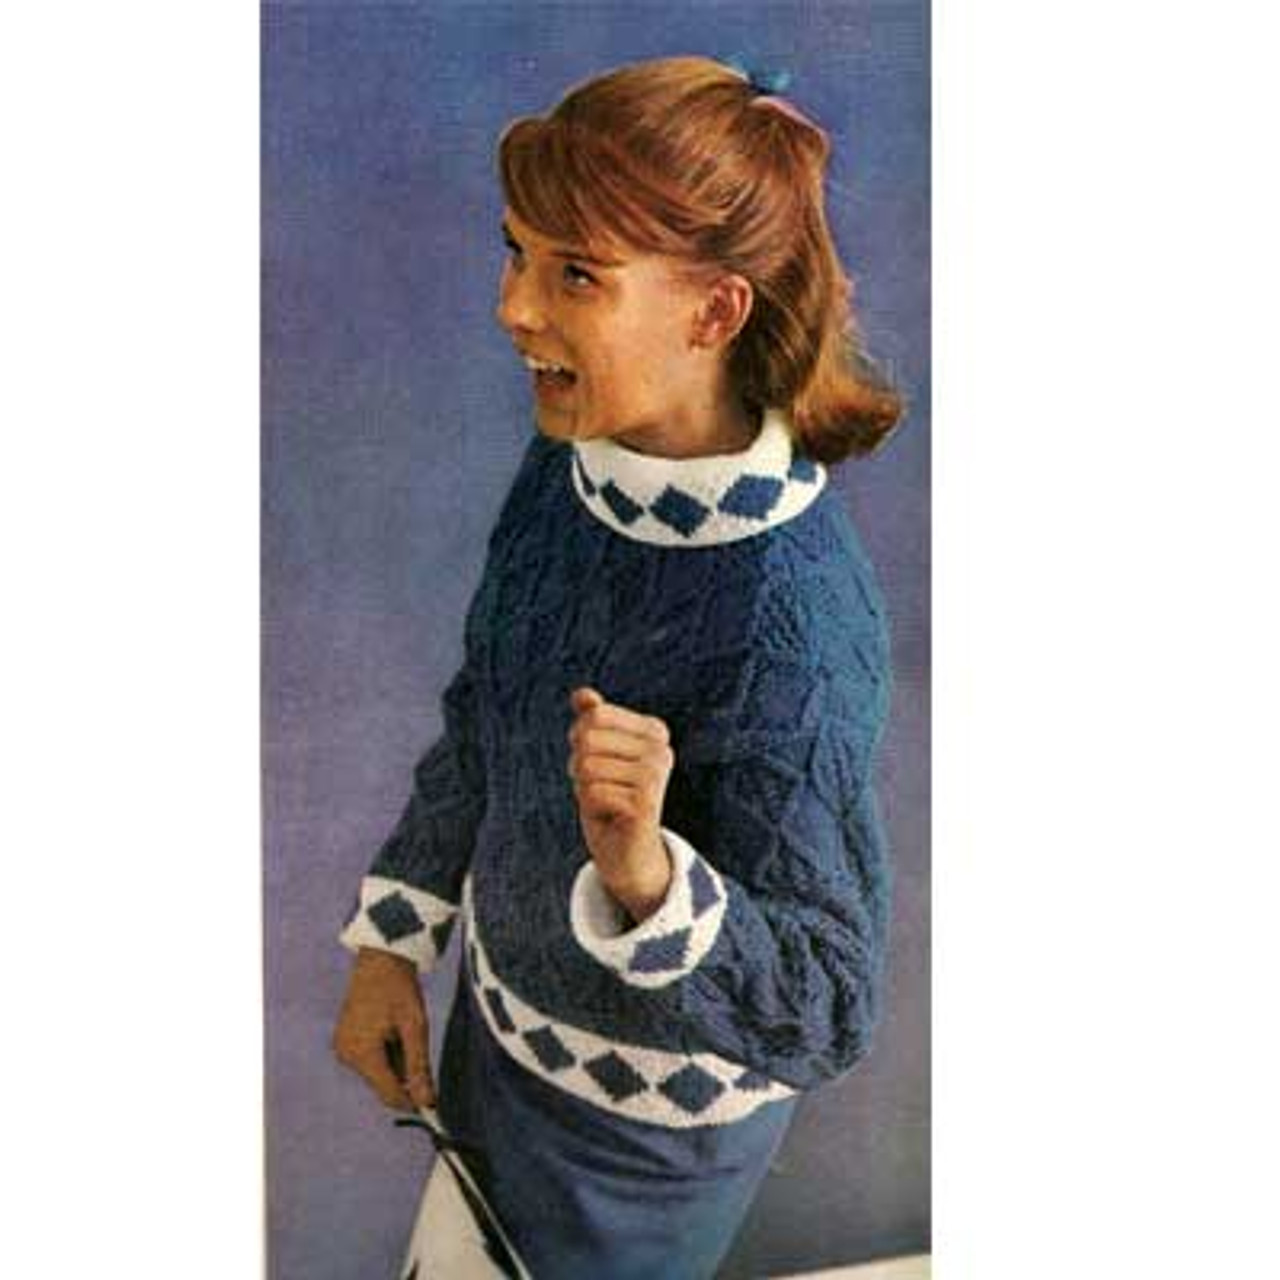 Blue Diamond Knitted Pullover Pattern